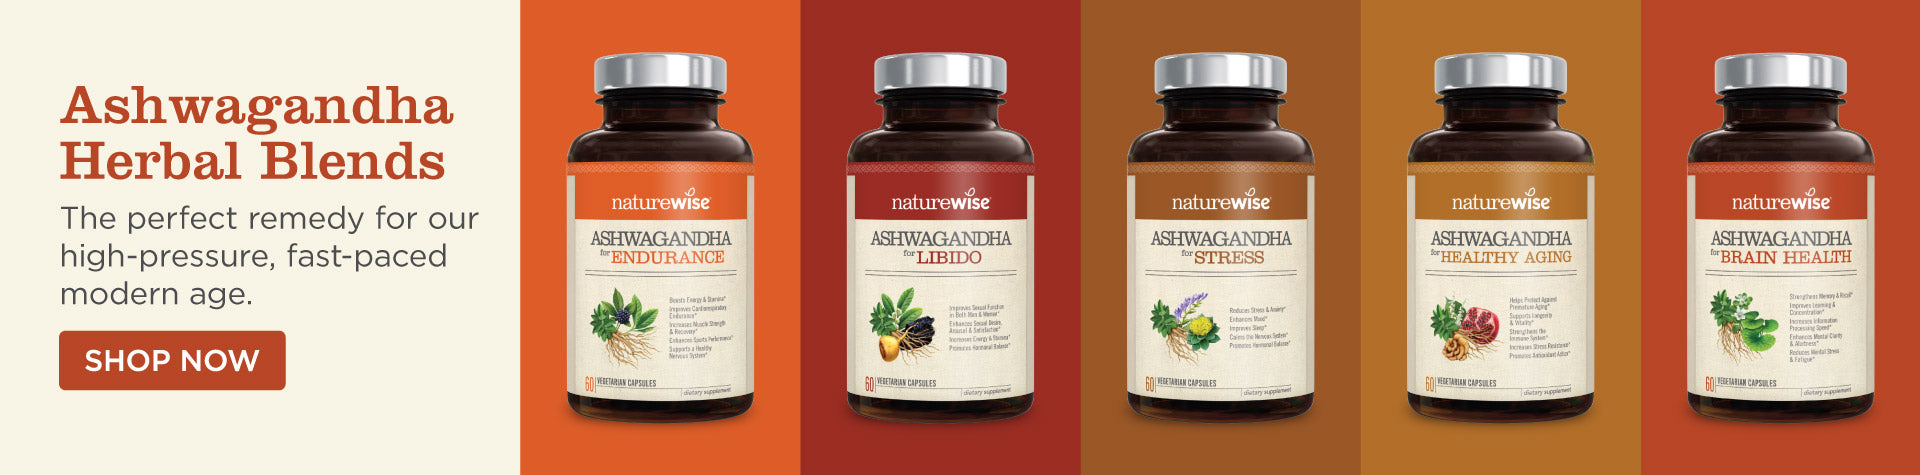 Ashwagandha Herbal Blends — Renowned for its ability to reduce the damaging effects of stress on the mind and body, ashwagandha is the perfect remedy for our high-pressure, fast-paced modern age. We combined a clinically proven ashwagandha extract with select botanicals to deliver targeted support for stress, endurance, libido, brain health, and healthy aging.